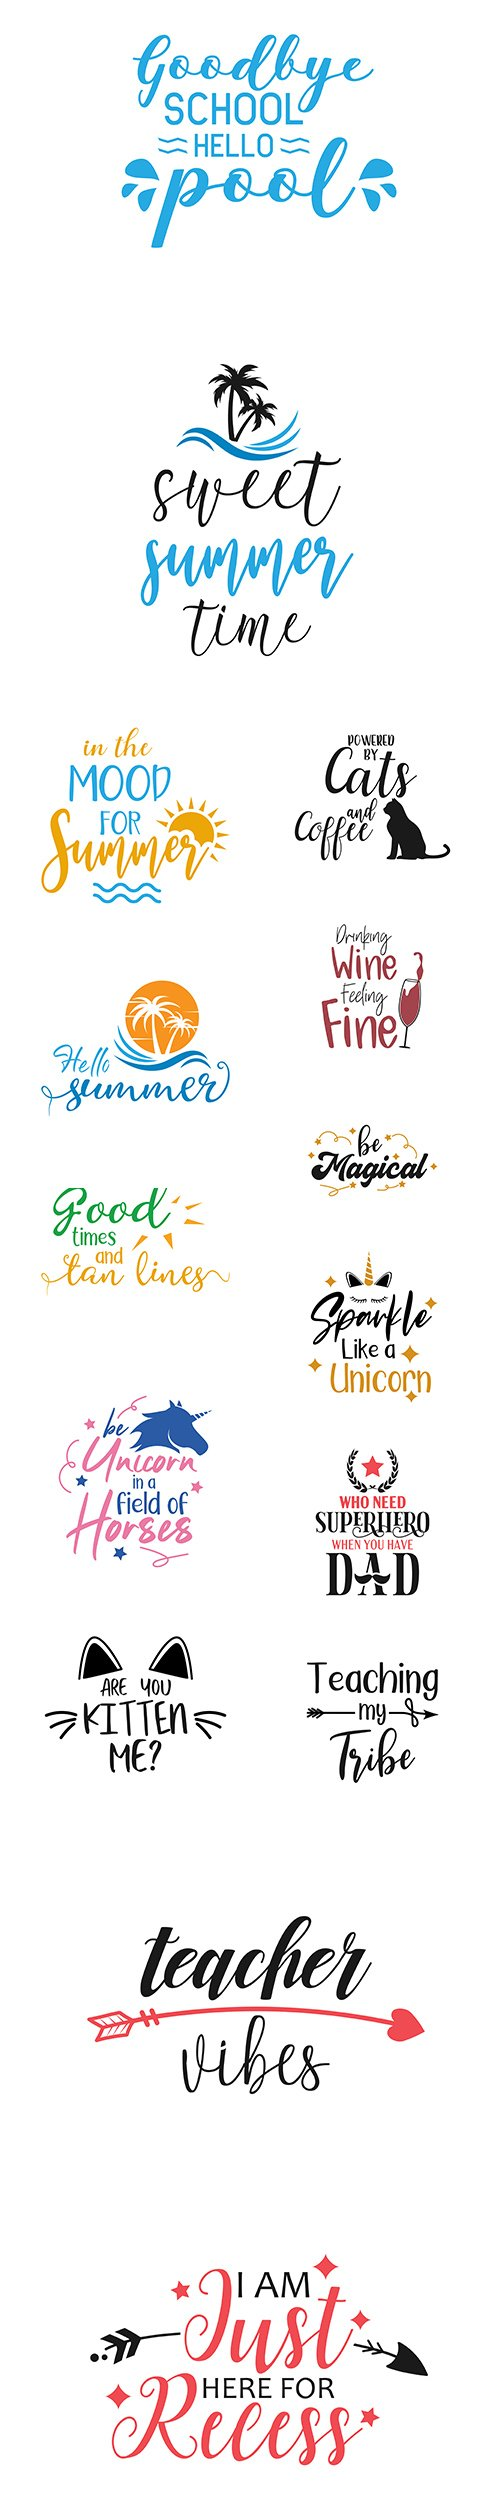 School, Summer, Unicorn and other Quote Lettering Typography Set